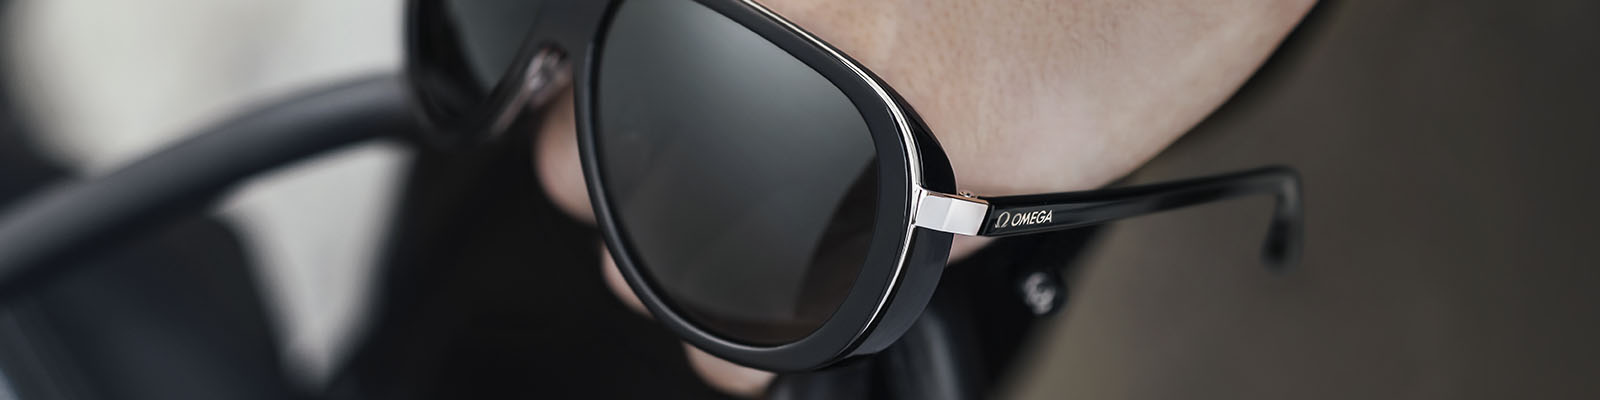 1e0f9f1a75a5 Sunglasses : all products